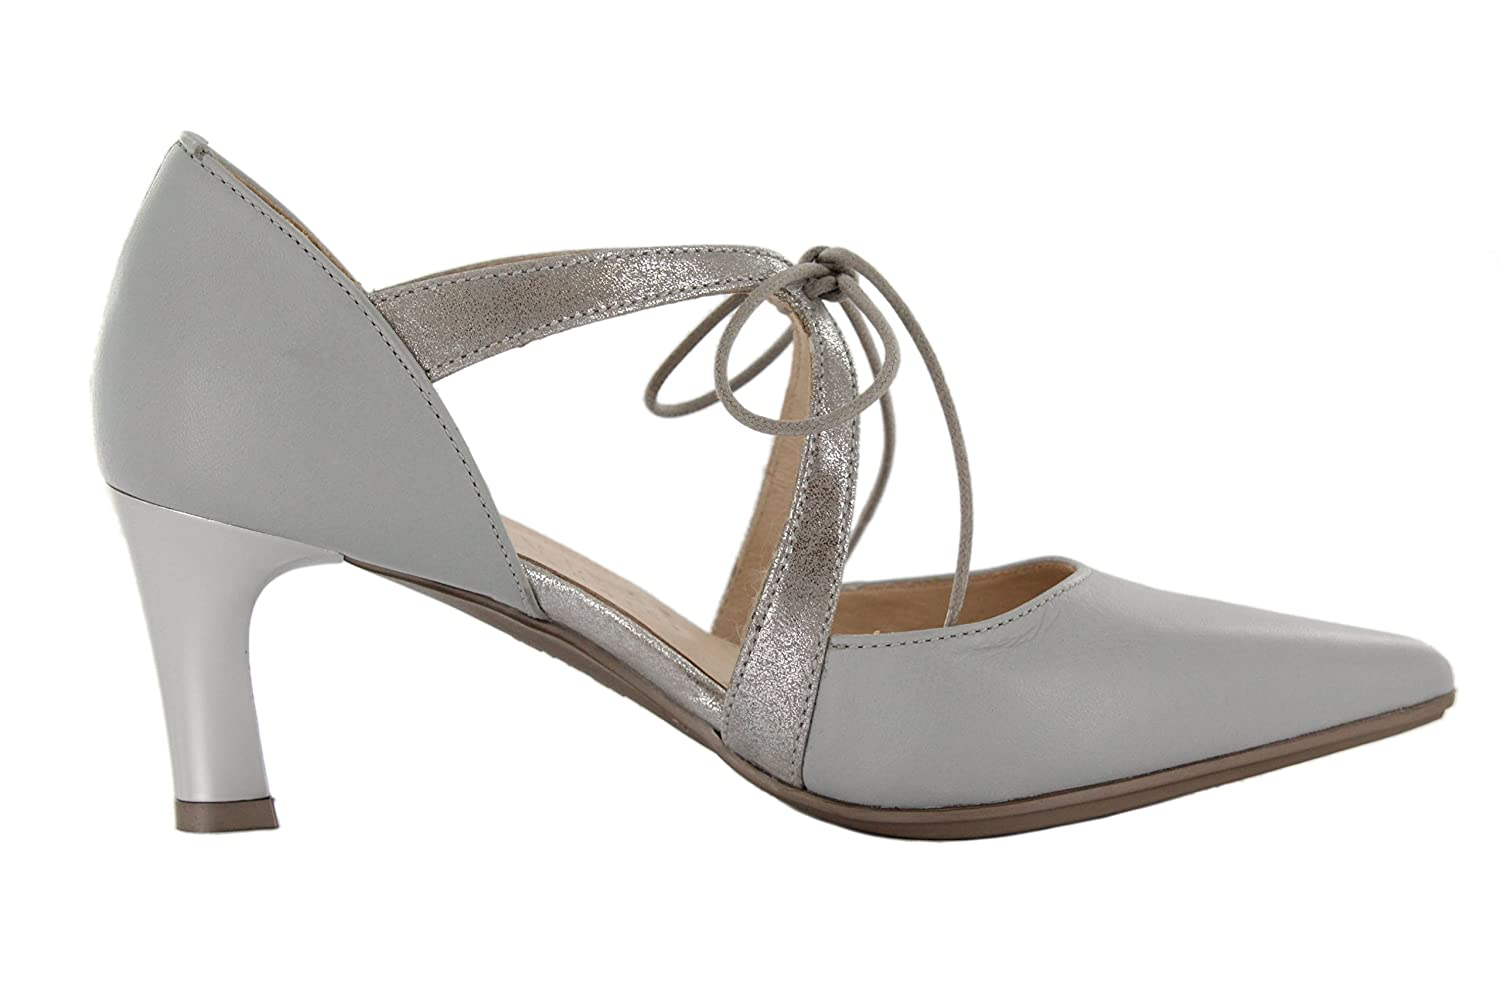 Hispanitas Pumps Spitz Grau (Grey Magic Acero) Leder: Amazon.de: Schuhe &  Handtaschen